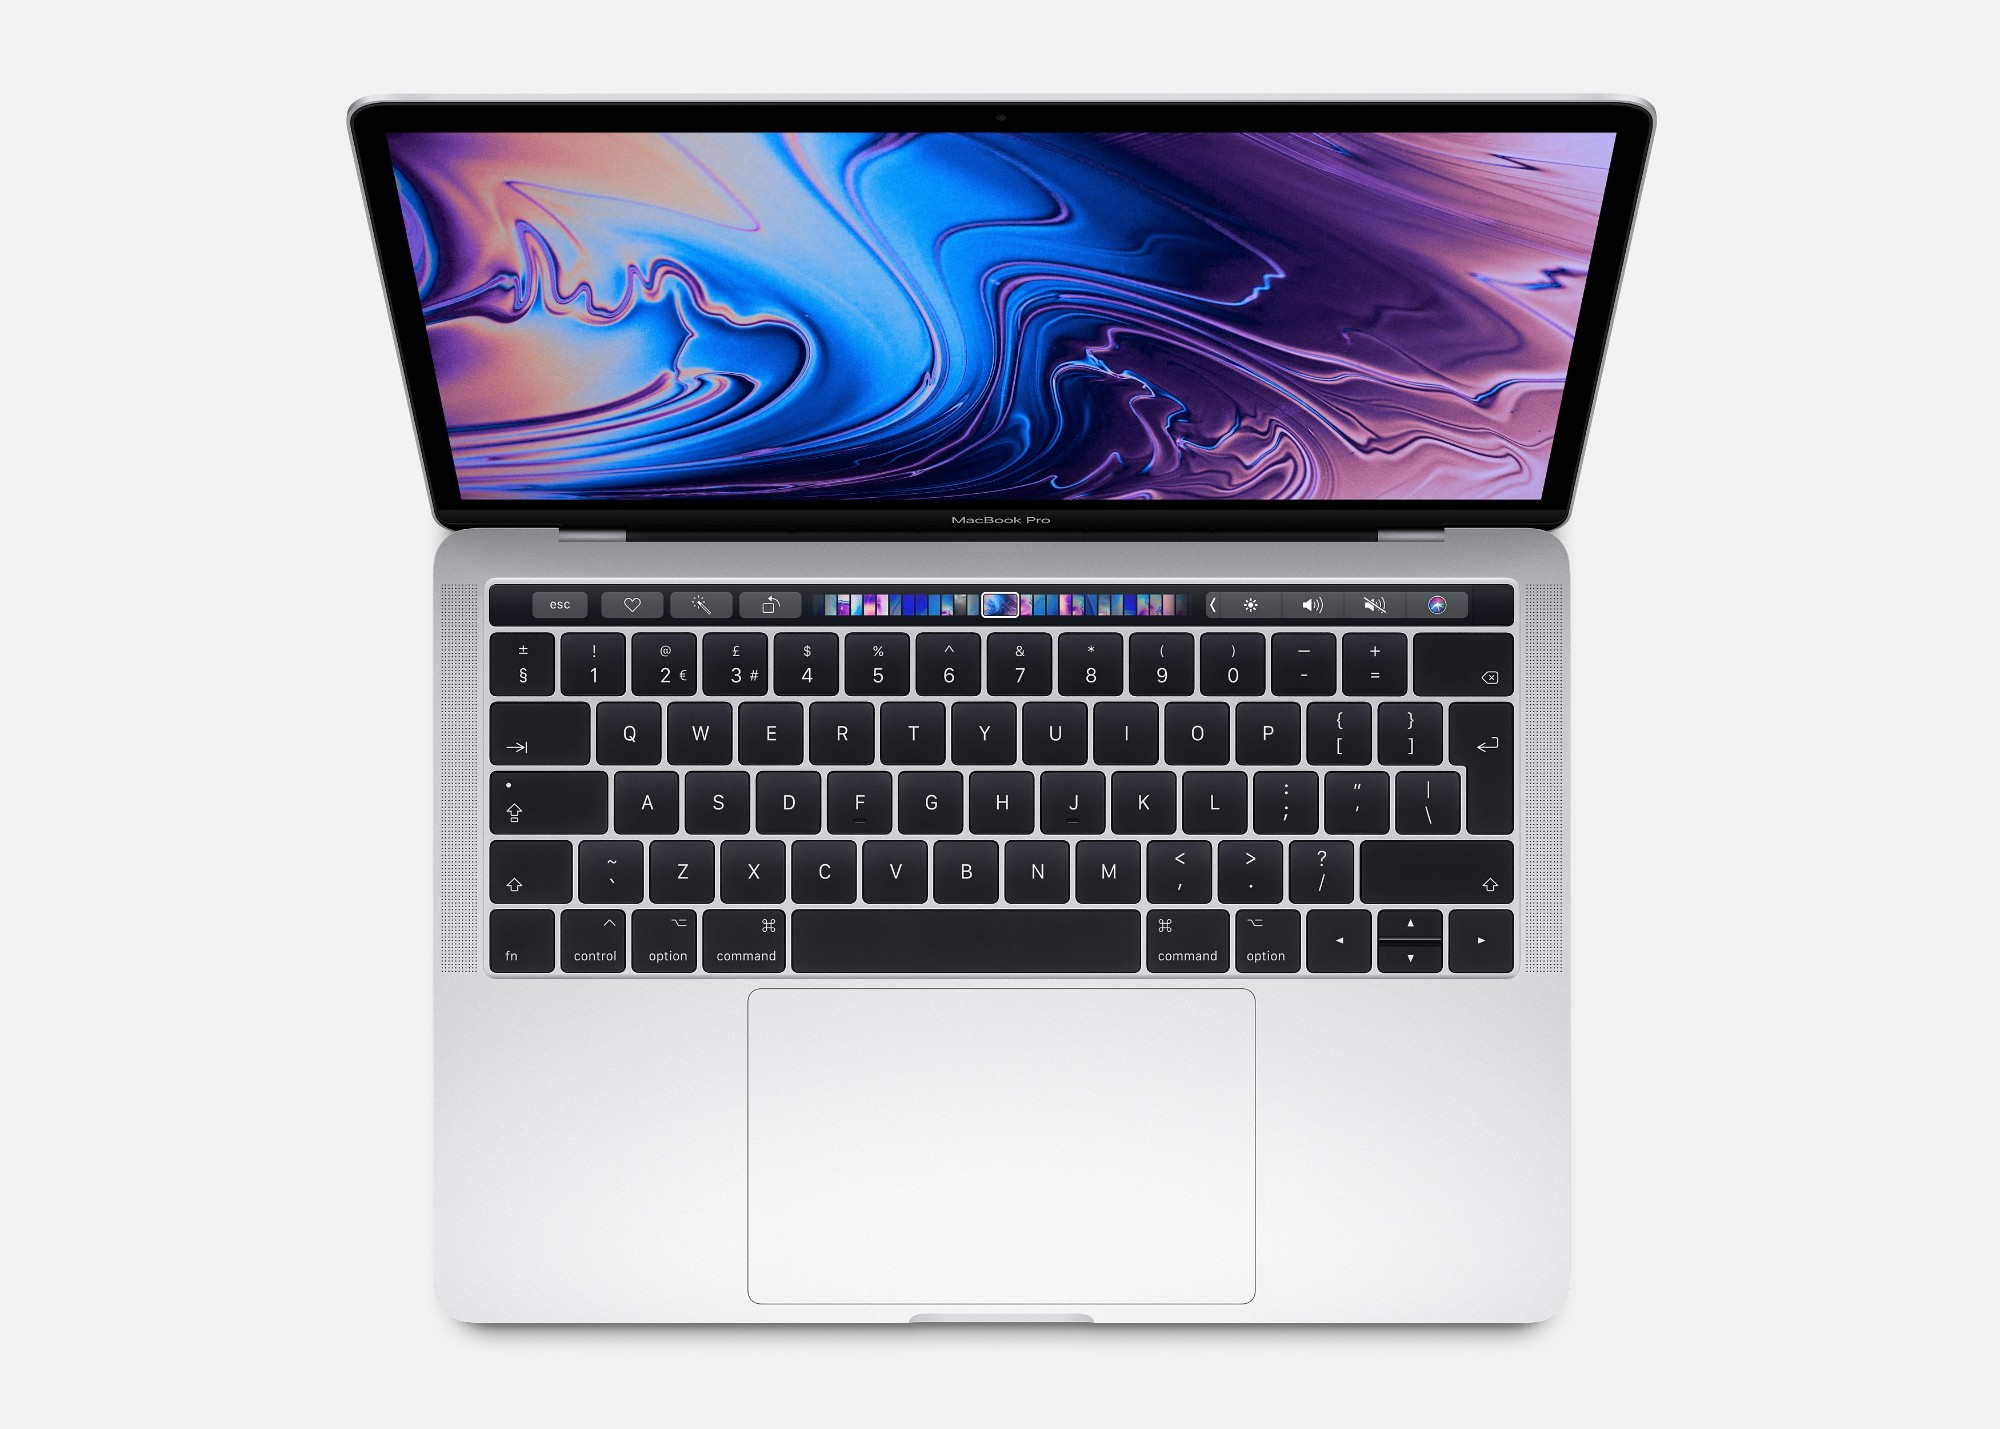 MacBook Pro Qci5 8gen 2.4gh TB 512GB 8GB 13in Ios Silver        In